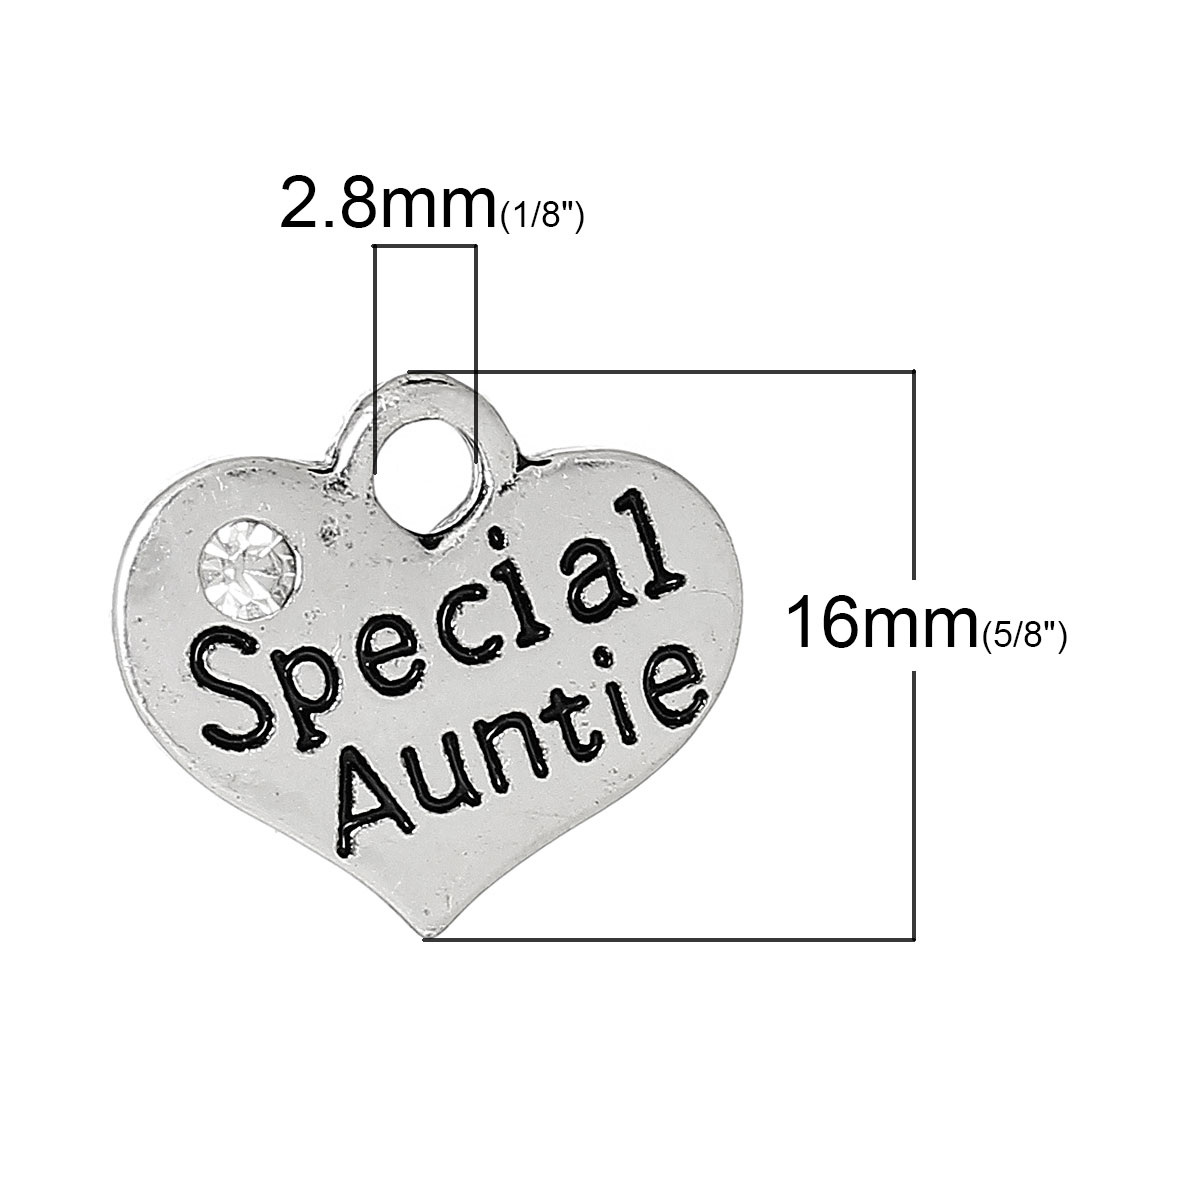 DoreenBeads Charm Pendants Heart antique silver color Message PatternSpecial AuntieCarved Clear Rhinestone 16mm x 14mm,20 PCs